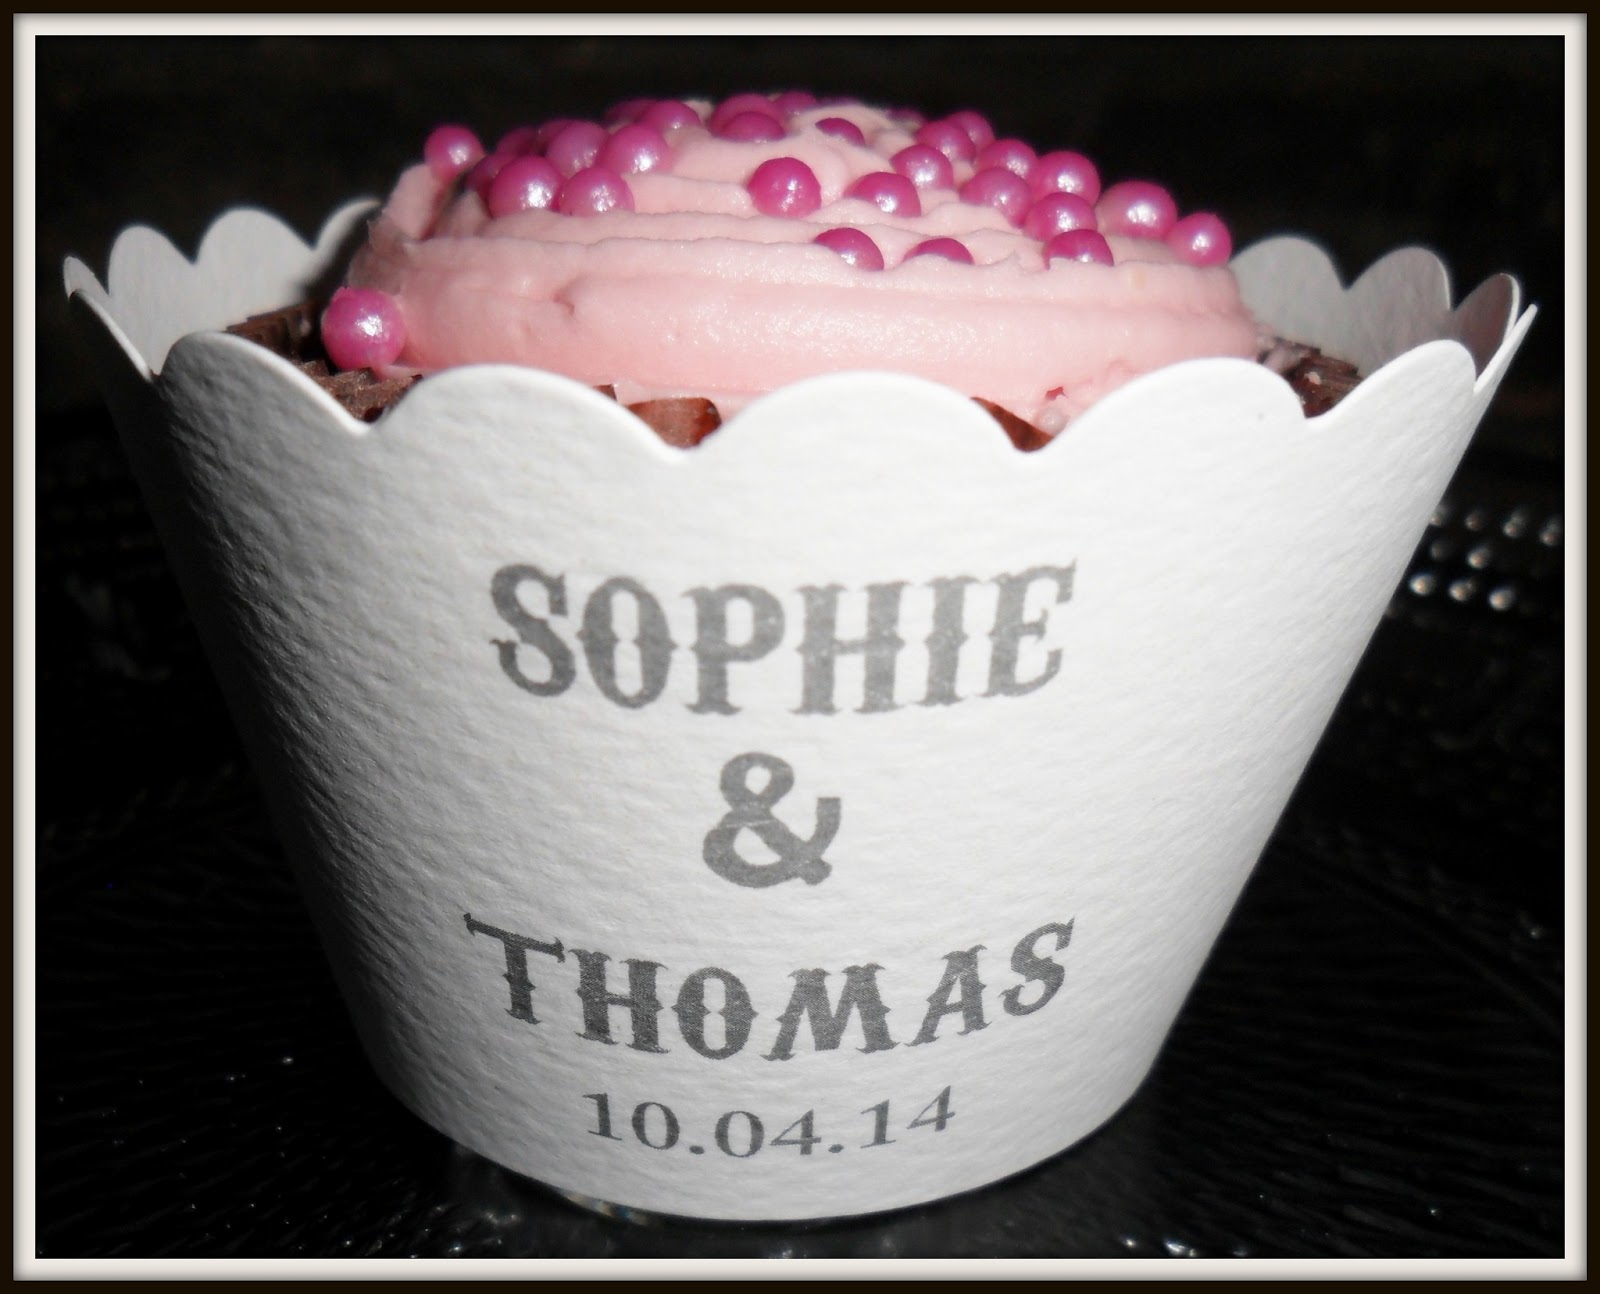 Personalized Cupcake Wrappers by Paper Themes